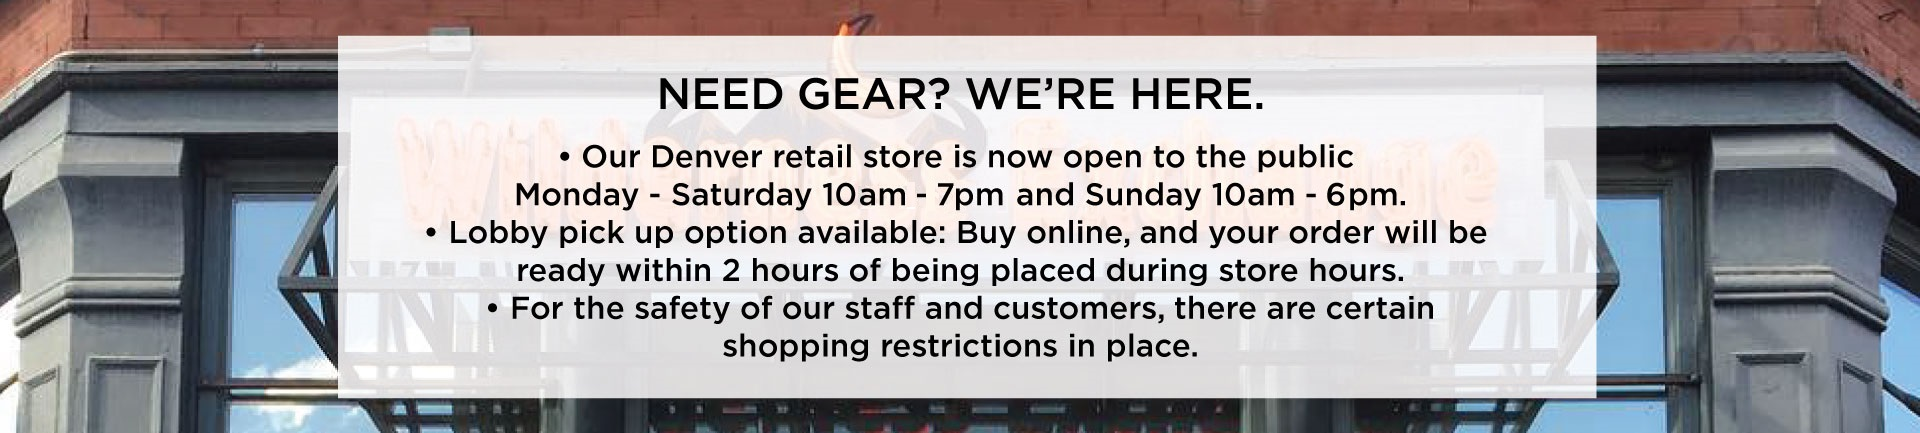 Need Gear, We're Here!